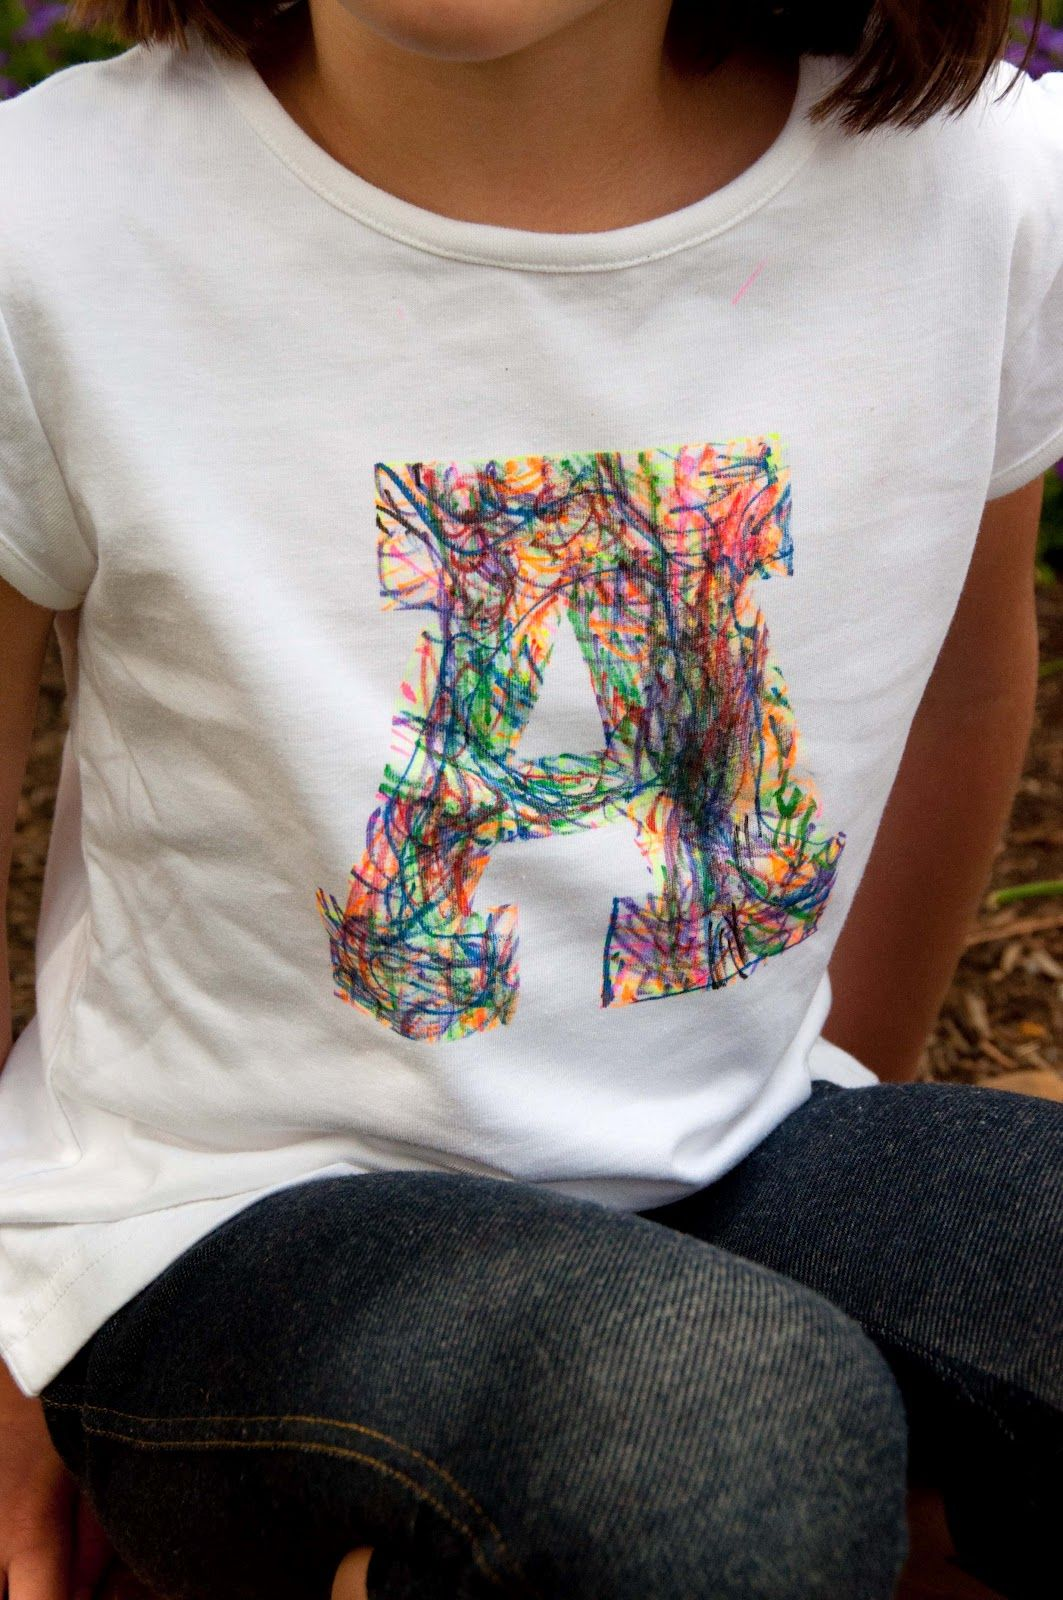 Aesthetic Nest Craft Scribble Initial T Shirt Tutorial From